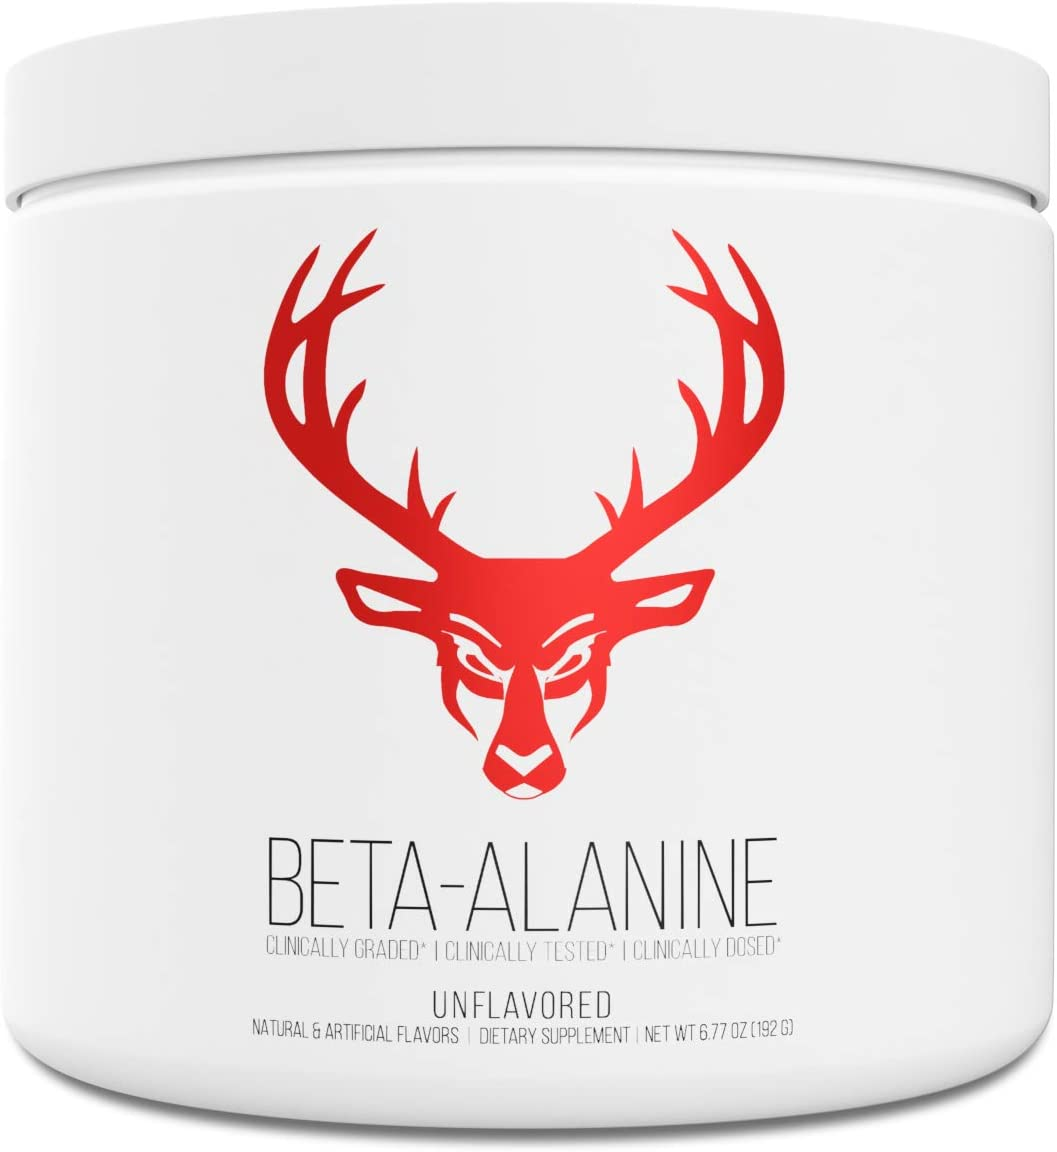 Bucked Up Beta Alanine 3.2g Powder Pure Beta Alanine, Gluten Free Non-GMO – Clinically Dosed and Tested – Boost Strength, Endurance, Muscle Mass, and Workout Capacity 60 Servings